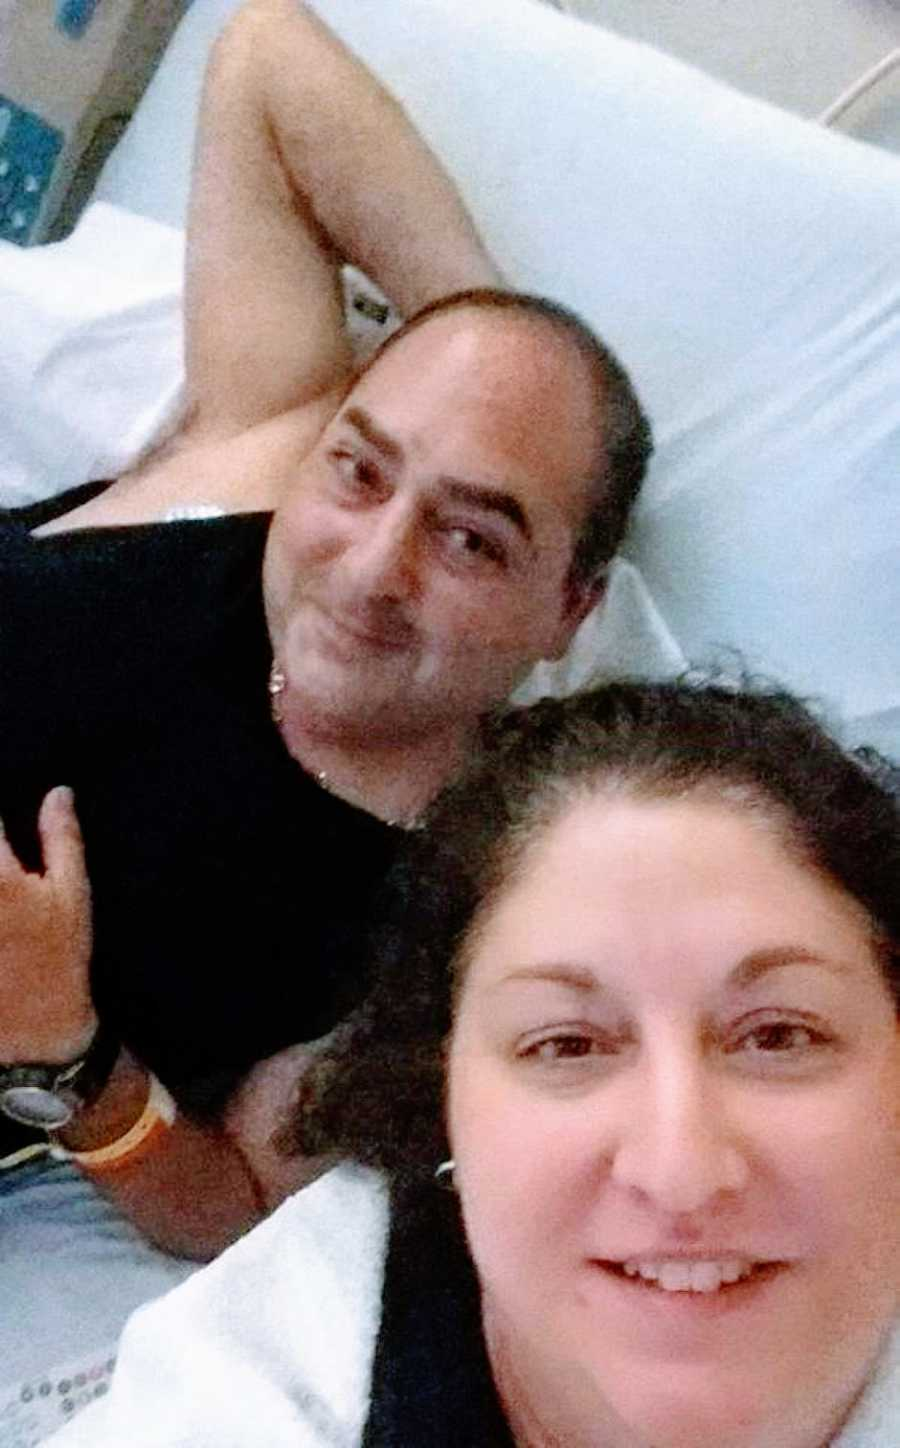 Couple take selfie together after husband gets diagnosed with Auto-Brewery syndrome